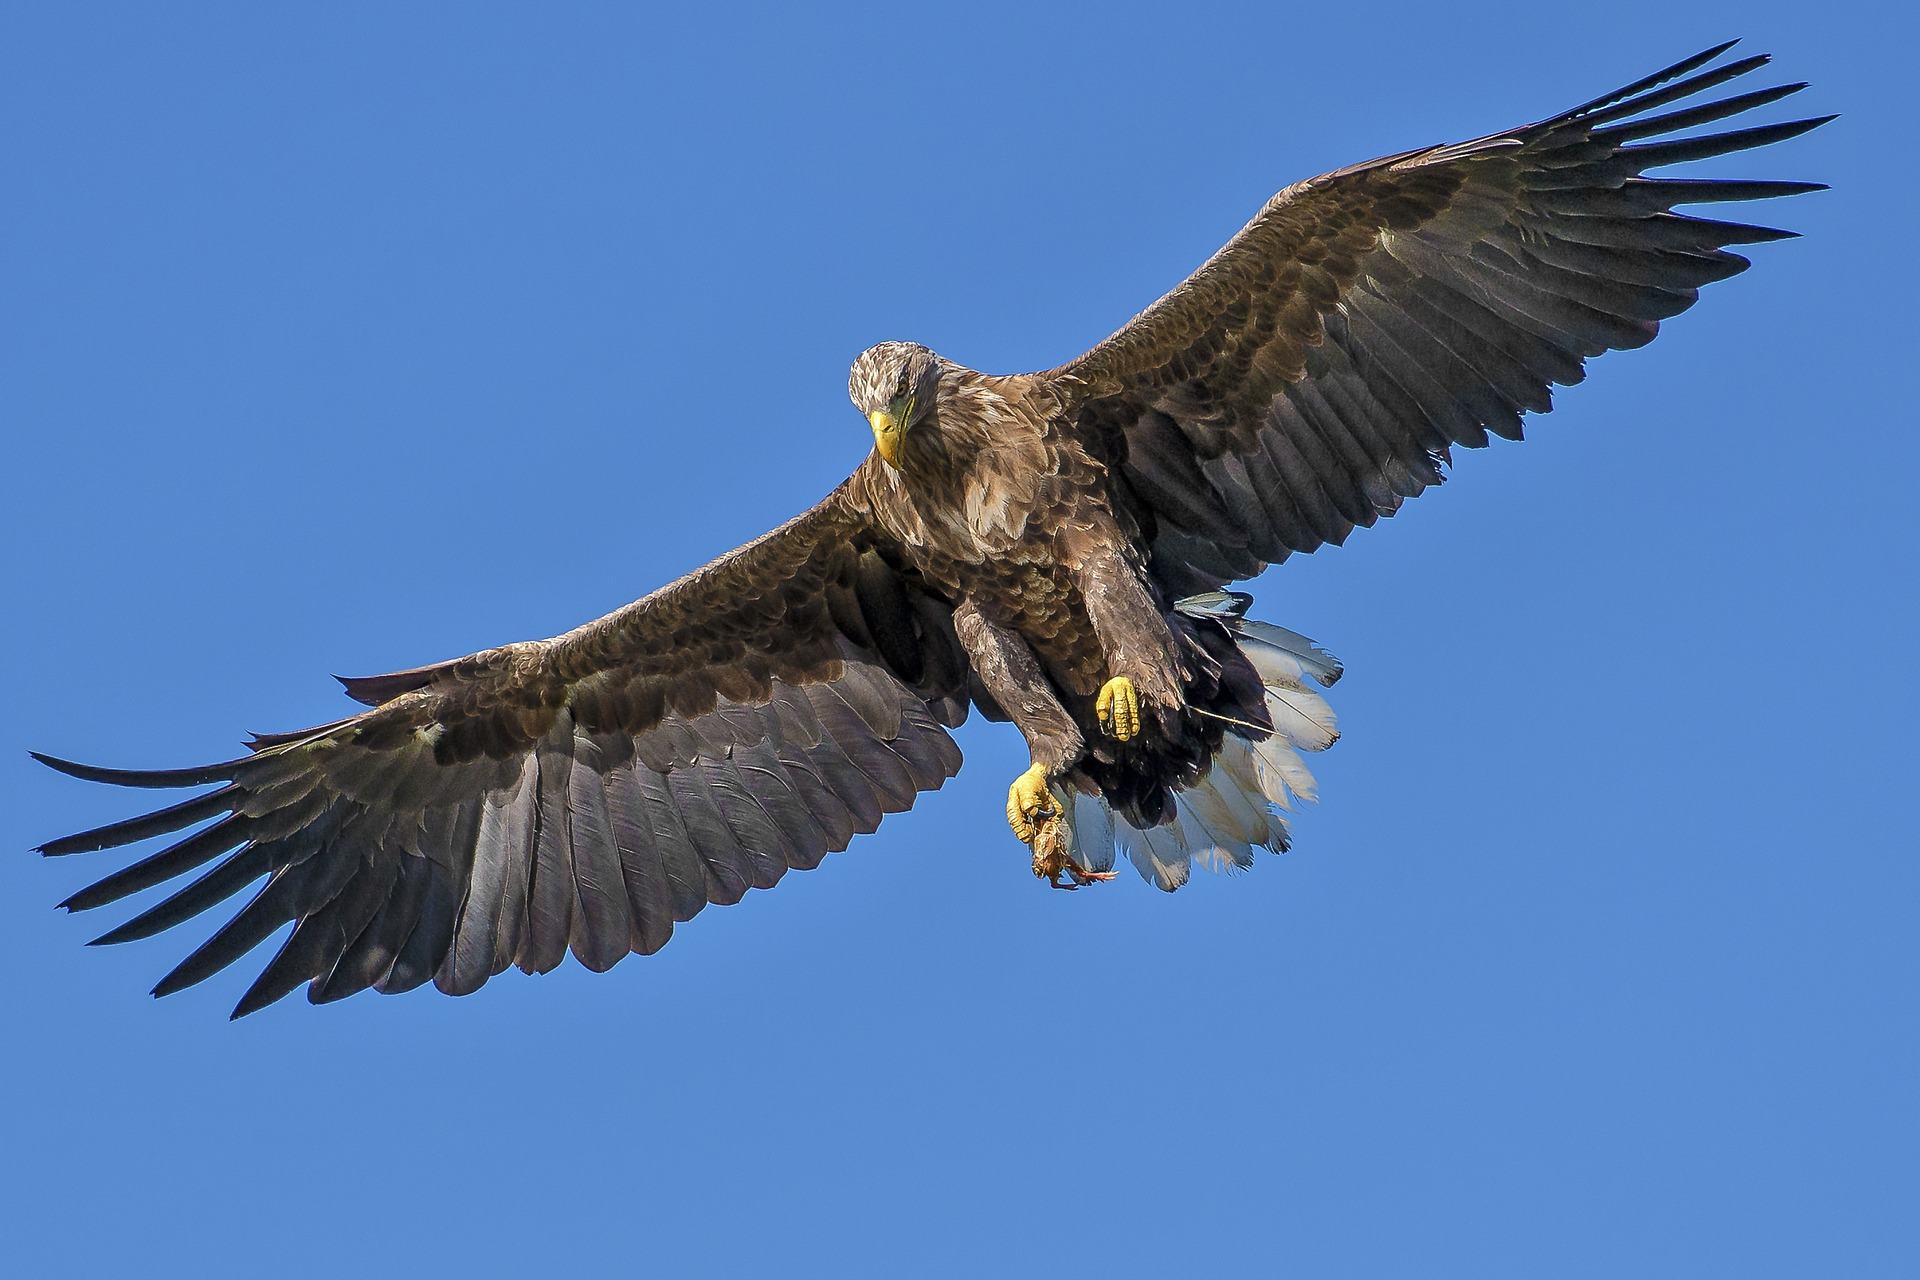 Soar even higher with the RDL Eagle.